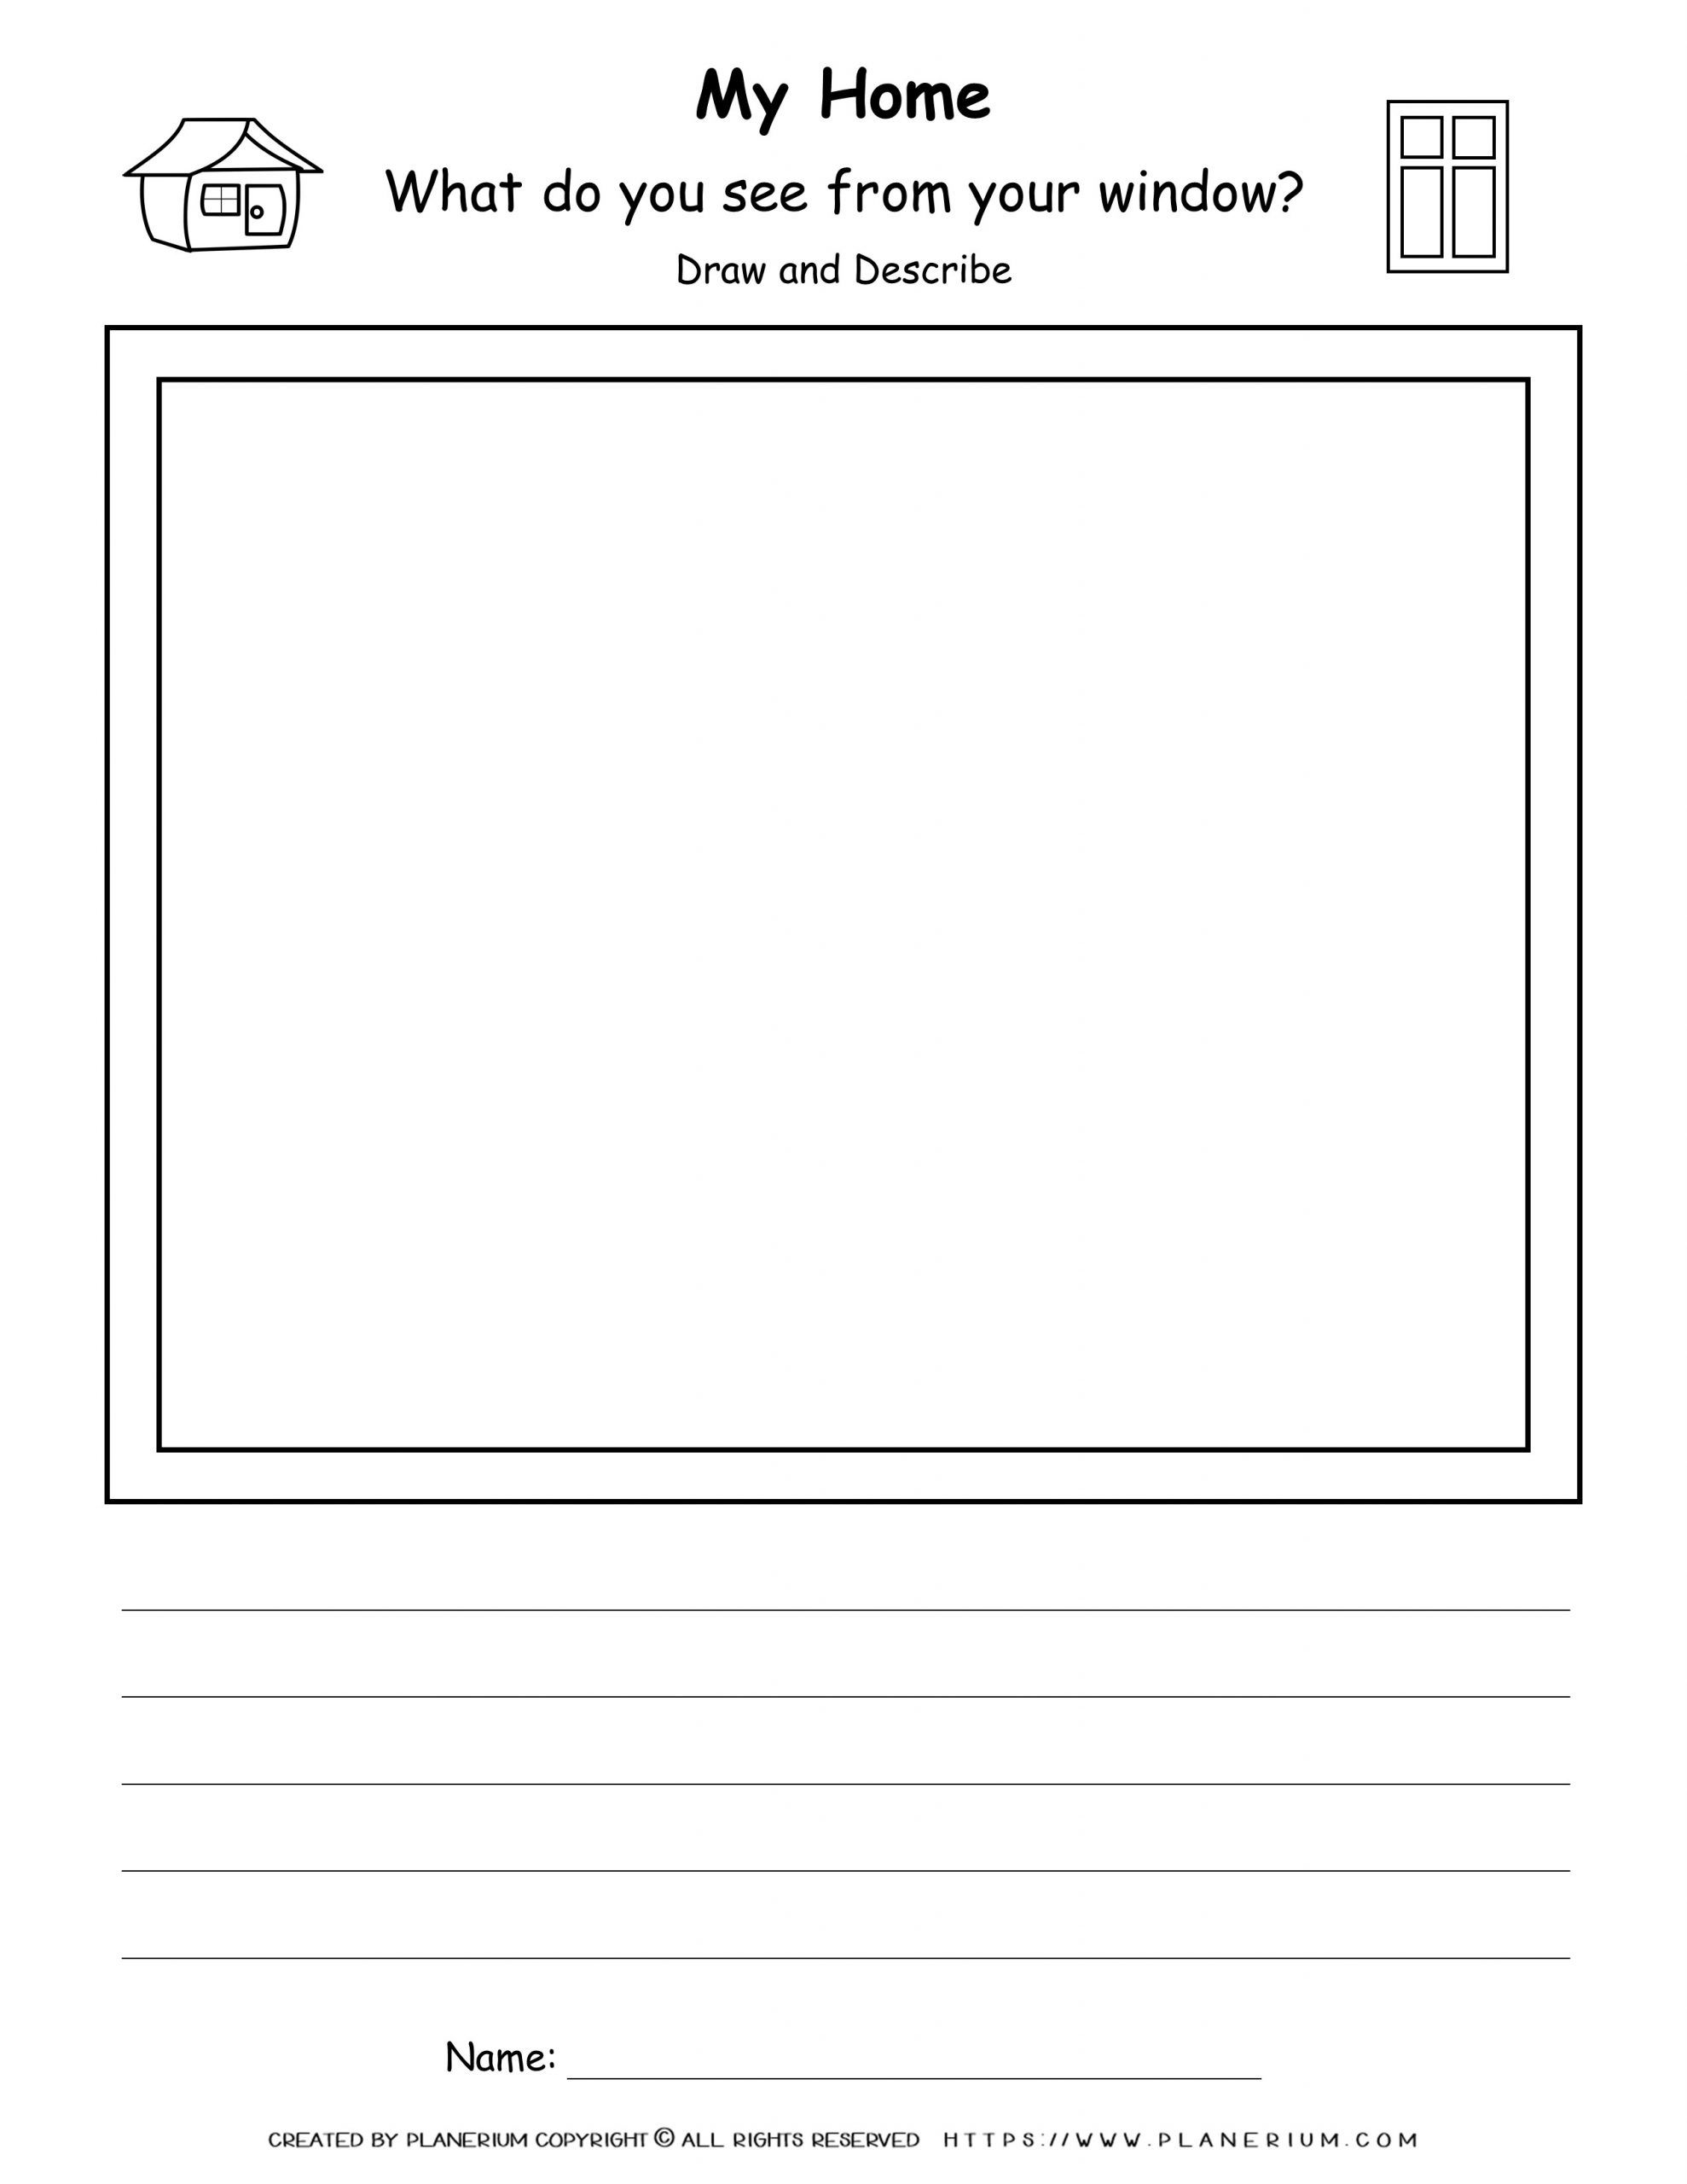 My Home - Worksheet - View From My Windlow